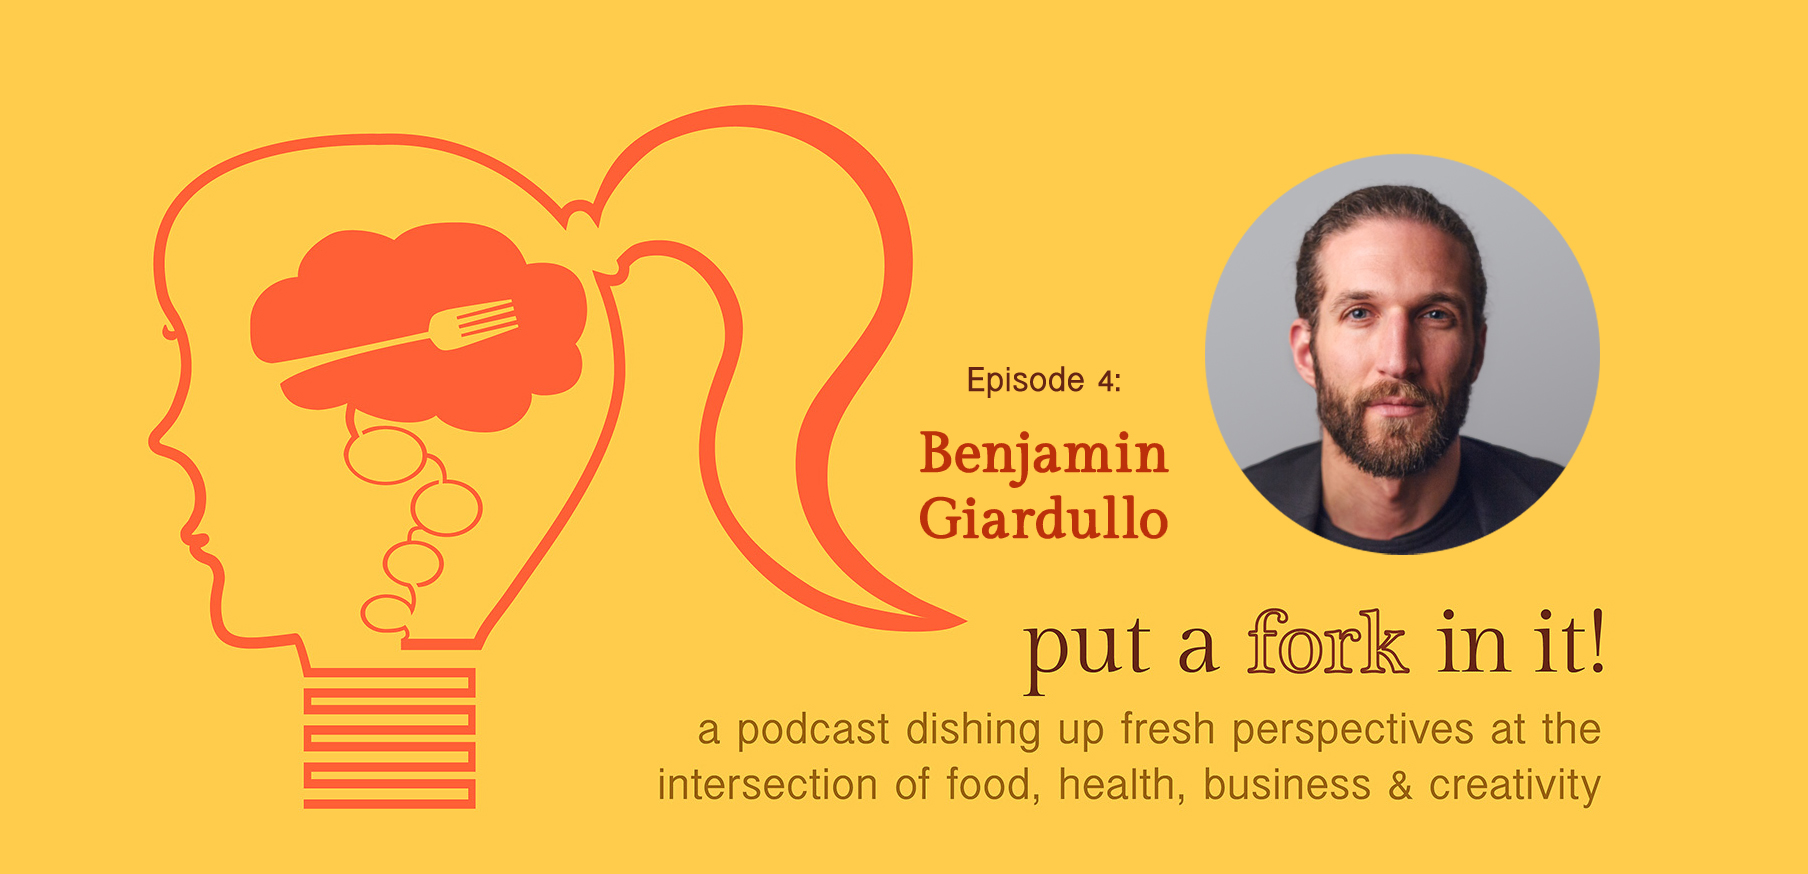 PAFII Episode 4: Ben Giardullo, Business Development Consultant and Food/Agriculture Entrepreneur